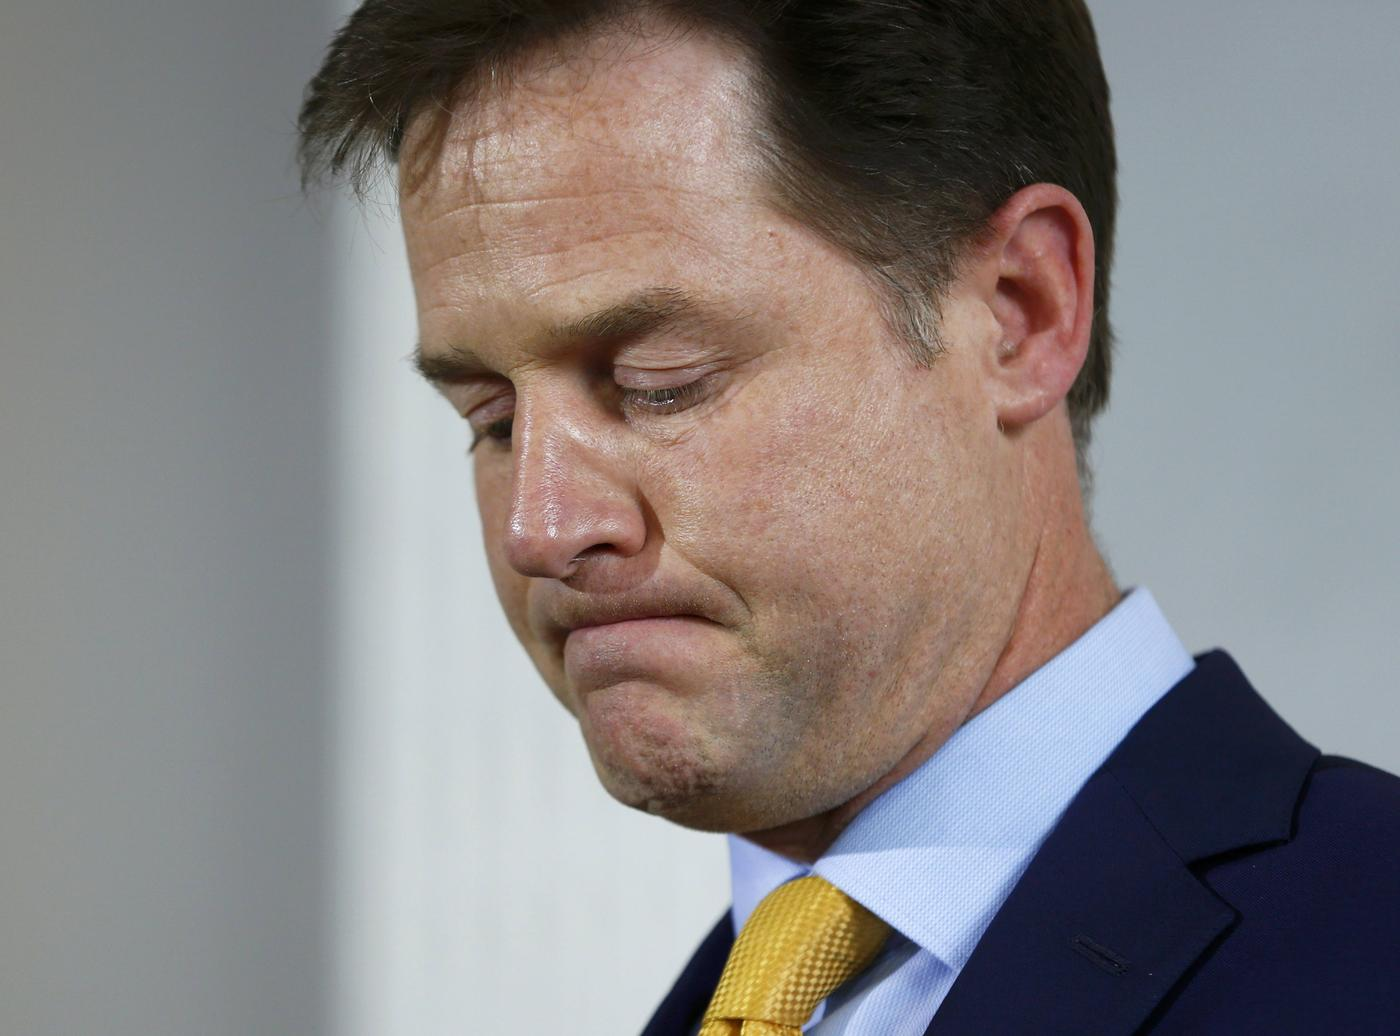 Nick Clegg 'offered to stand down' as Lib Dem Leader before the 2015 election